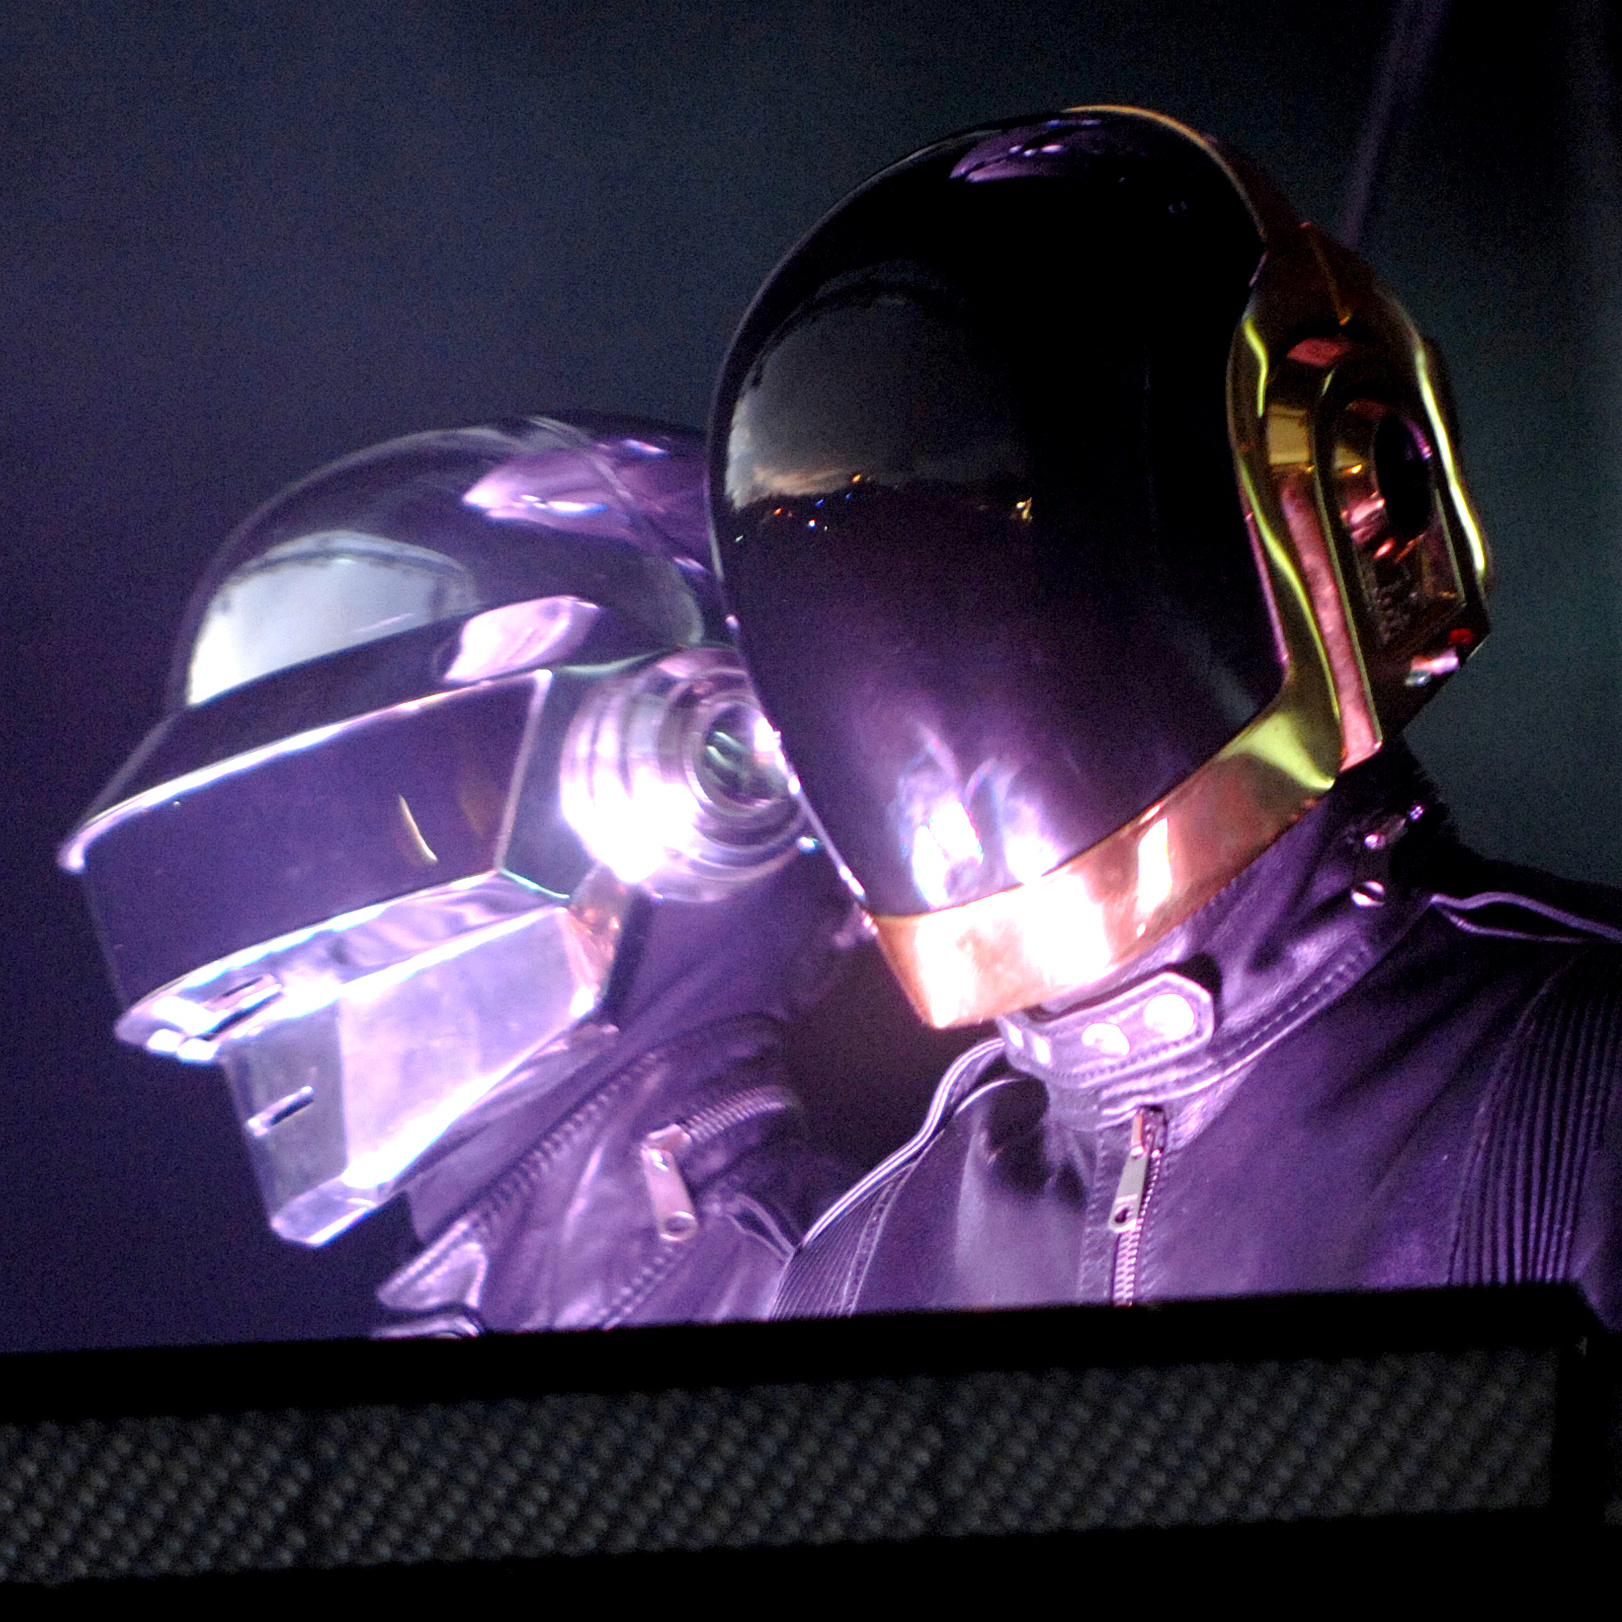 In spite of the robotic persona they've cultivated for years, Thomas Bangalter and Guy-Manuel de Homem-Christo elected to make the latest Daft Punk album in a real studio, with real musicians. Here the duo performs in Leeds in 2007.